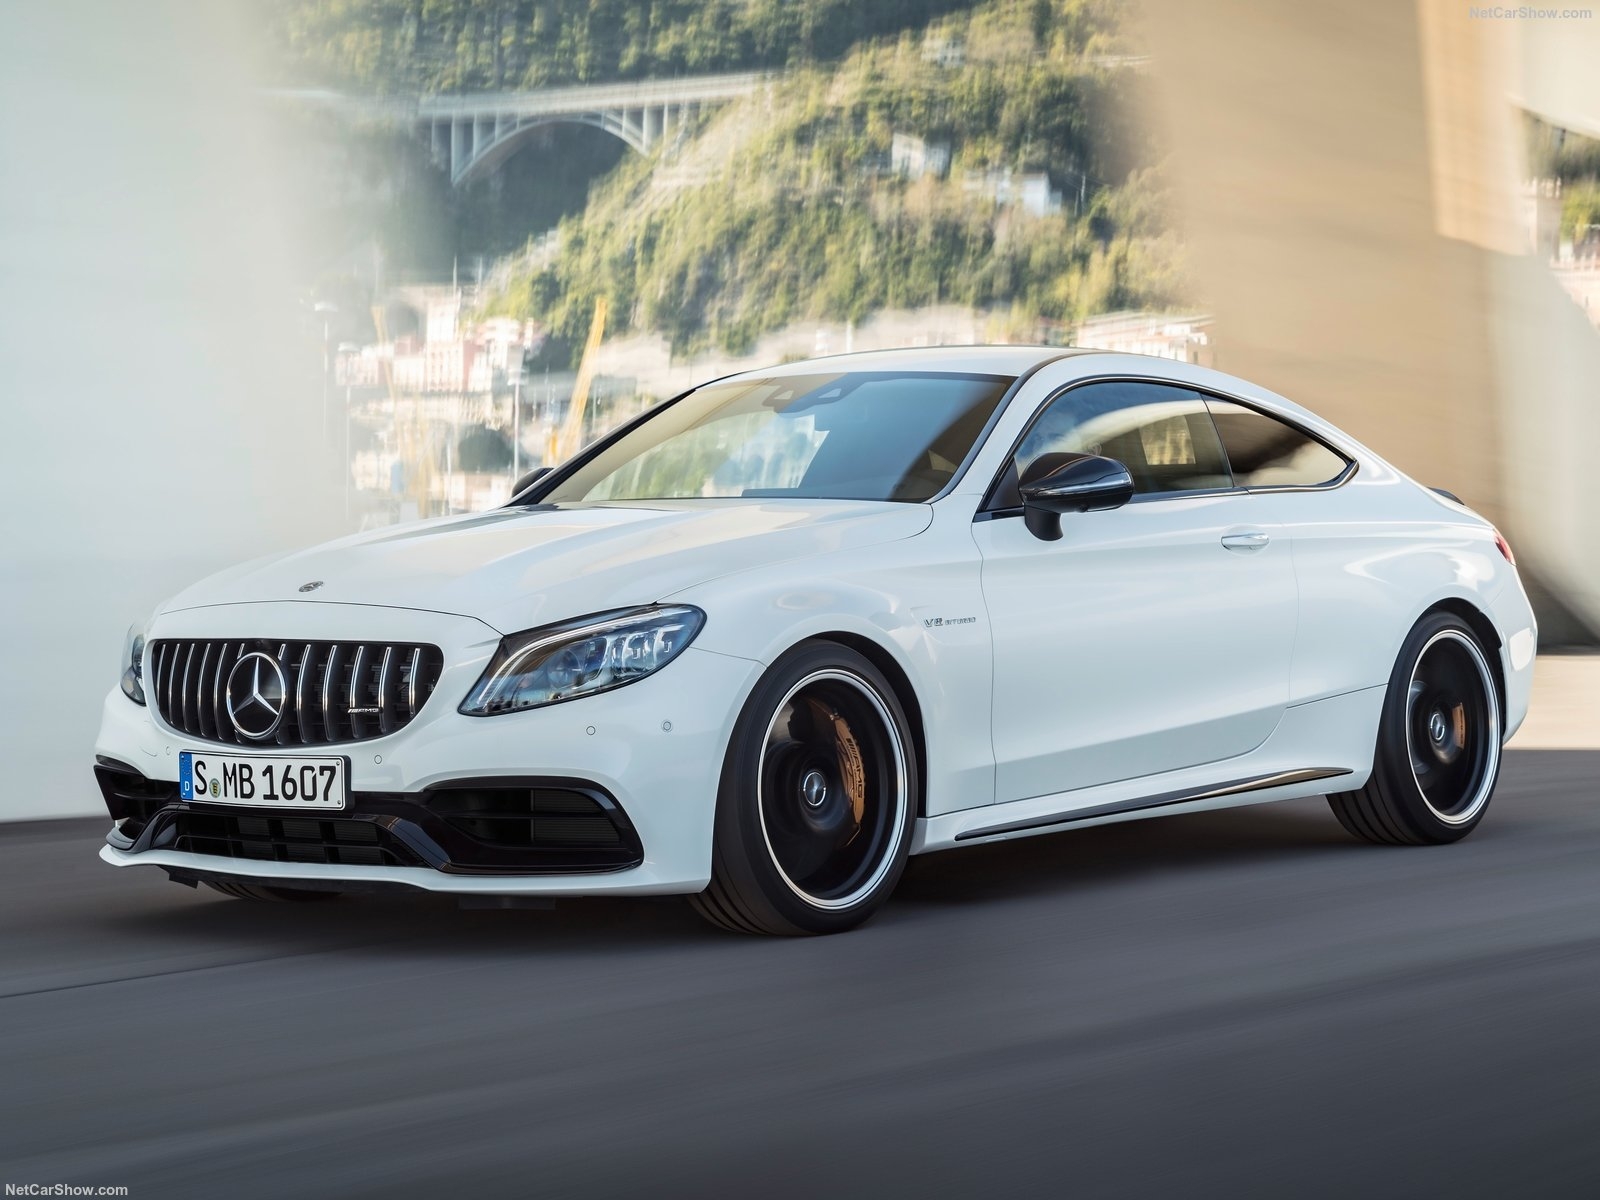 Mercedes-Benz C63 S AMG Coupe photo 187371